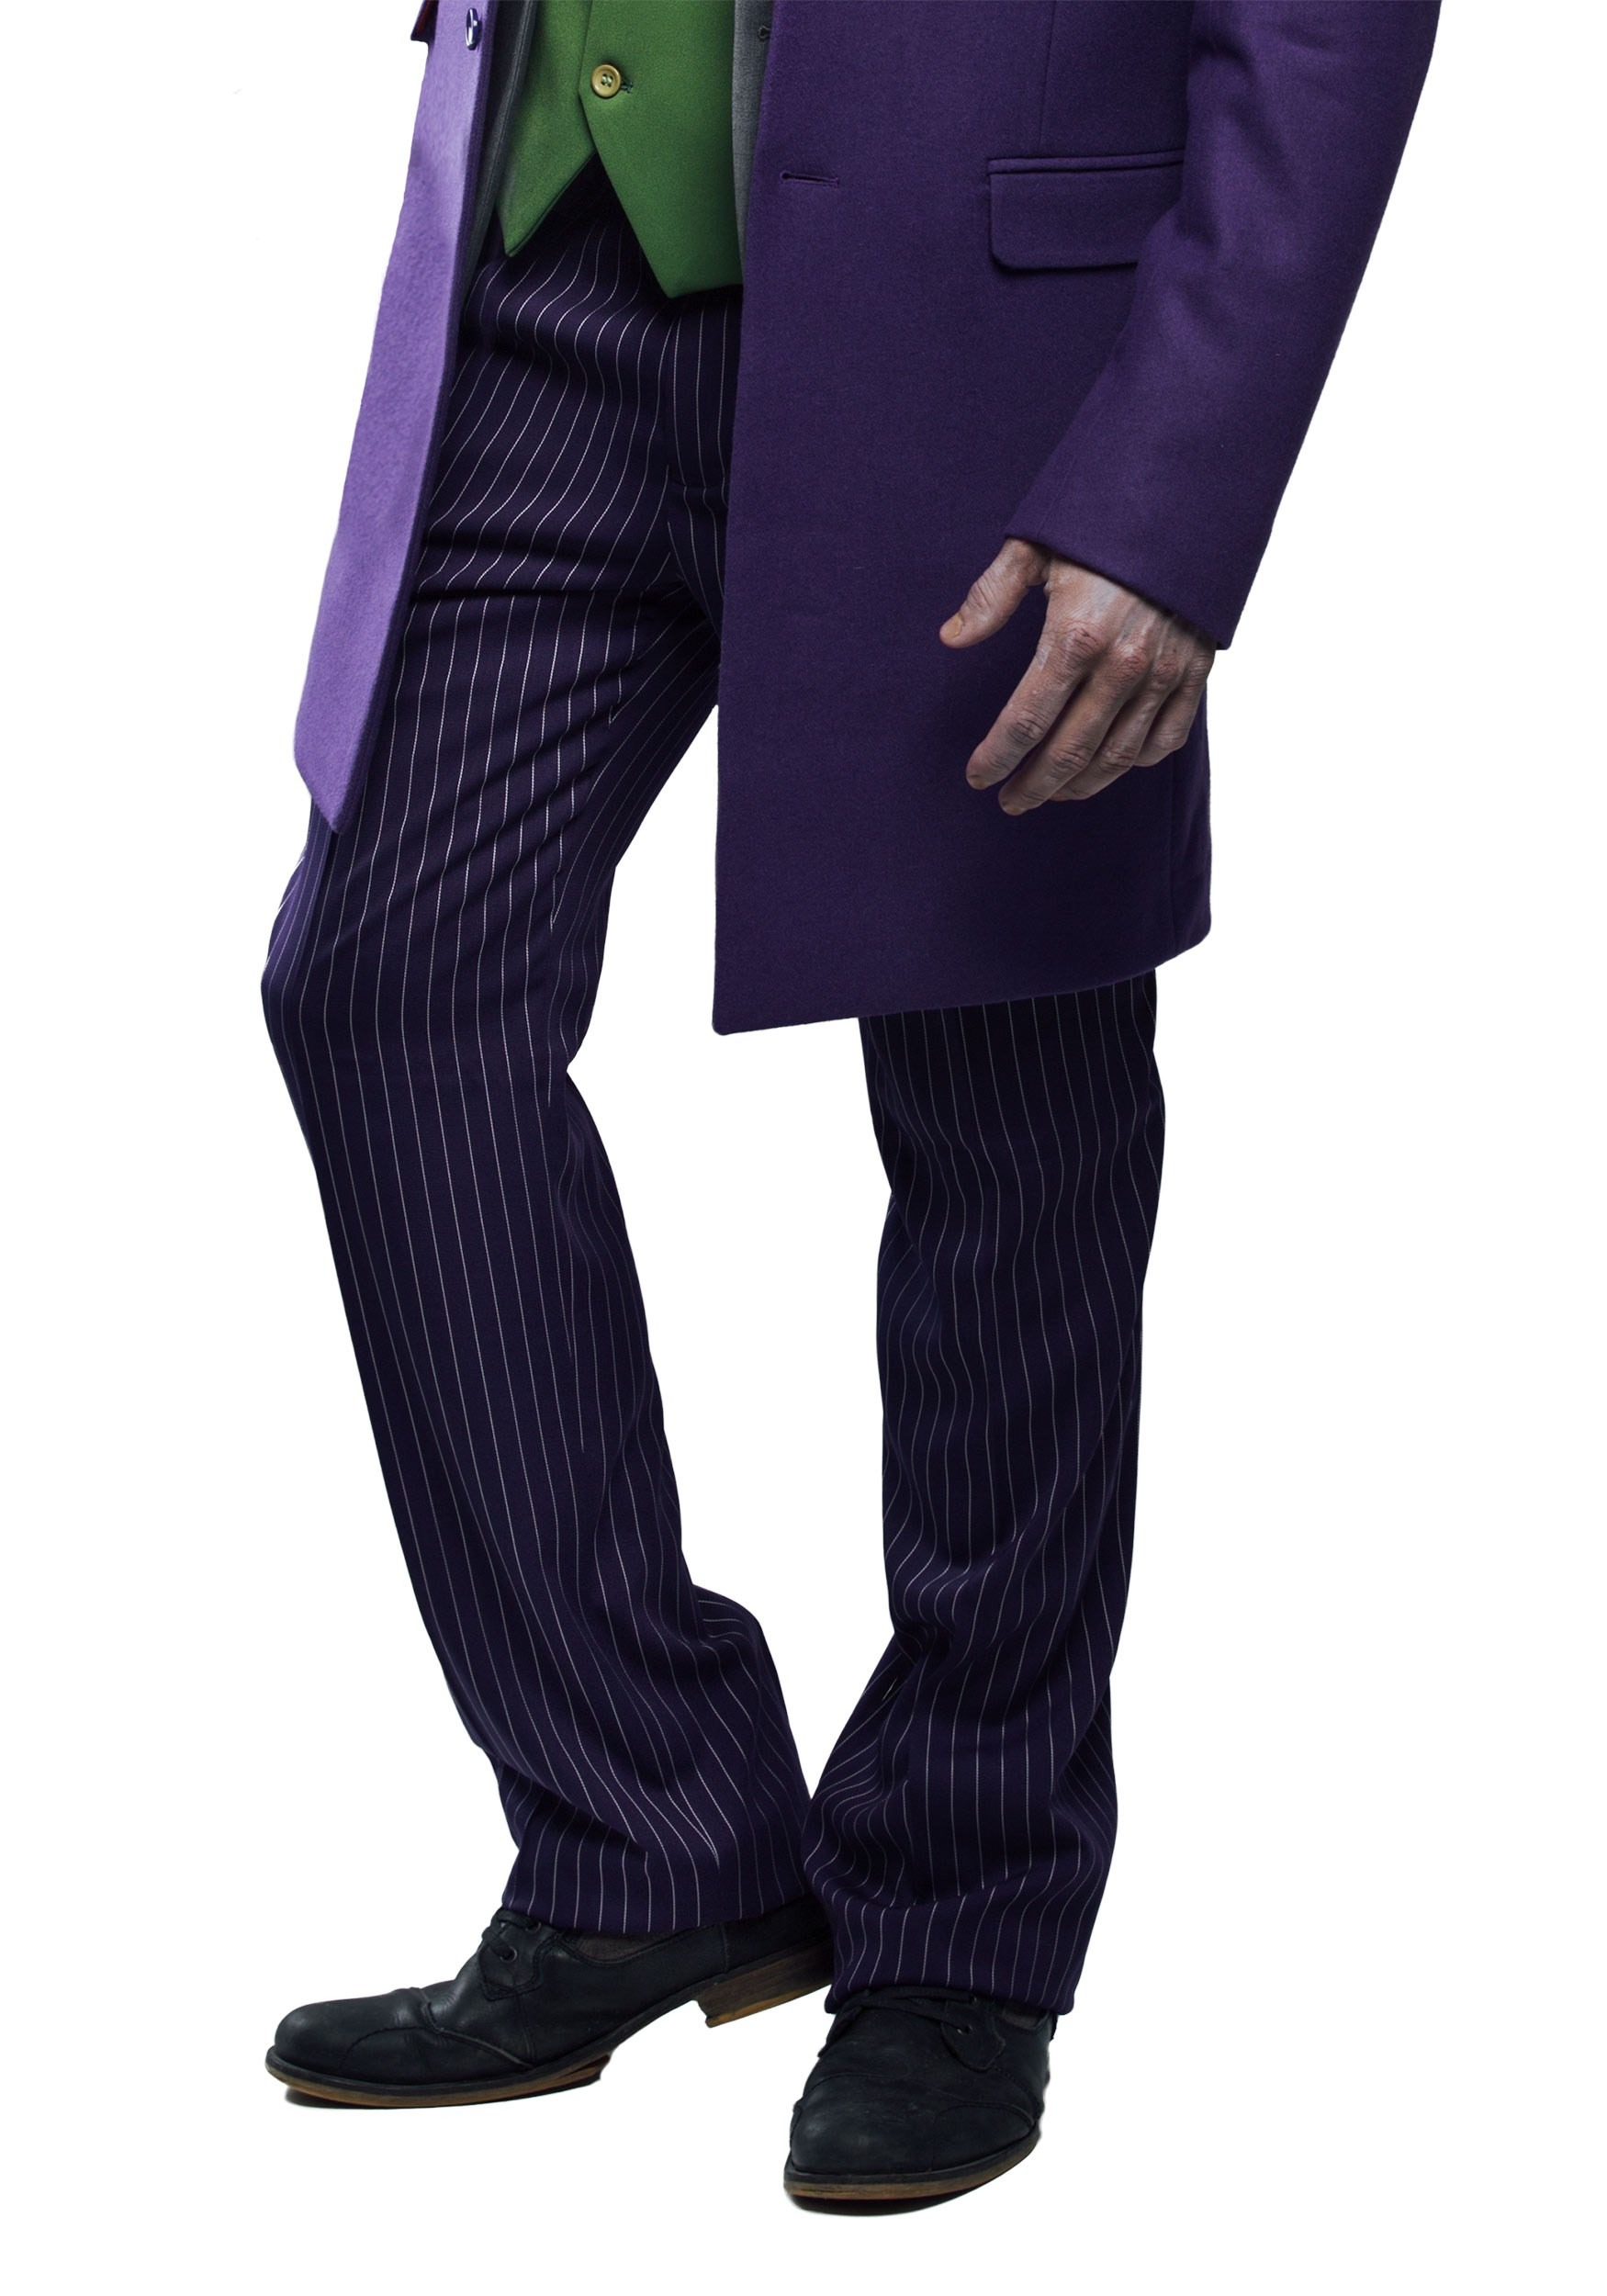 THE JOKER Slim Fit Suit Pants (Authentic) FUN9011P